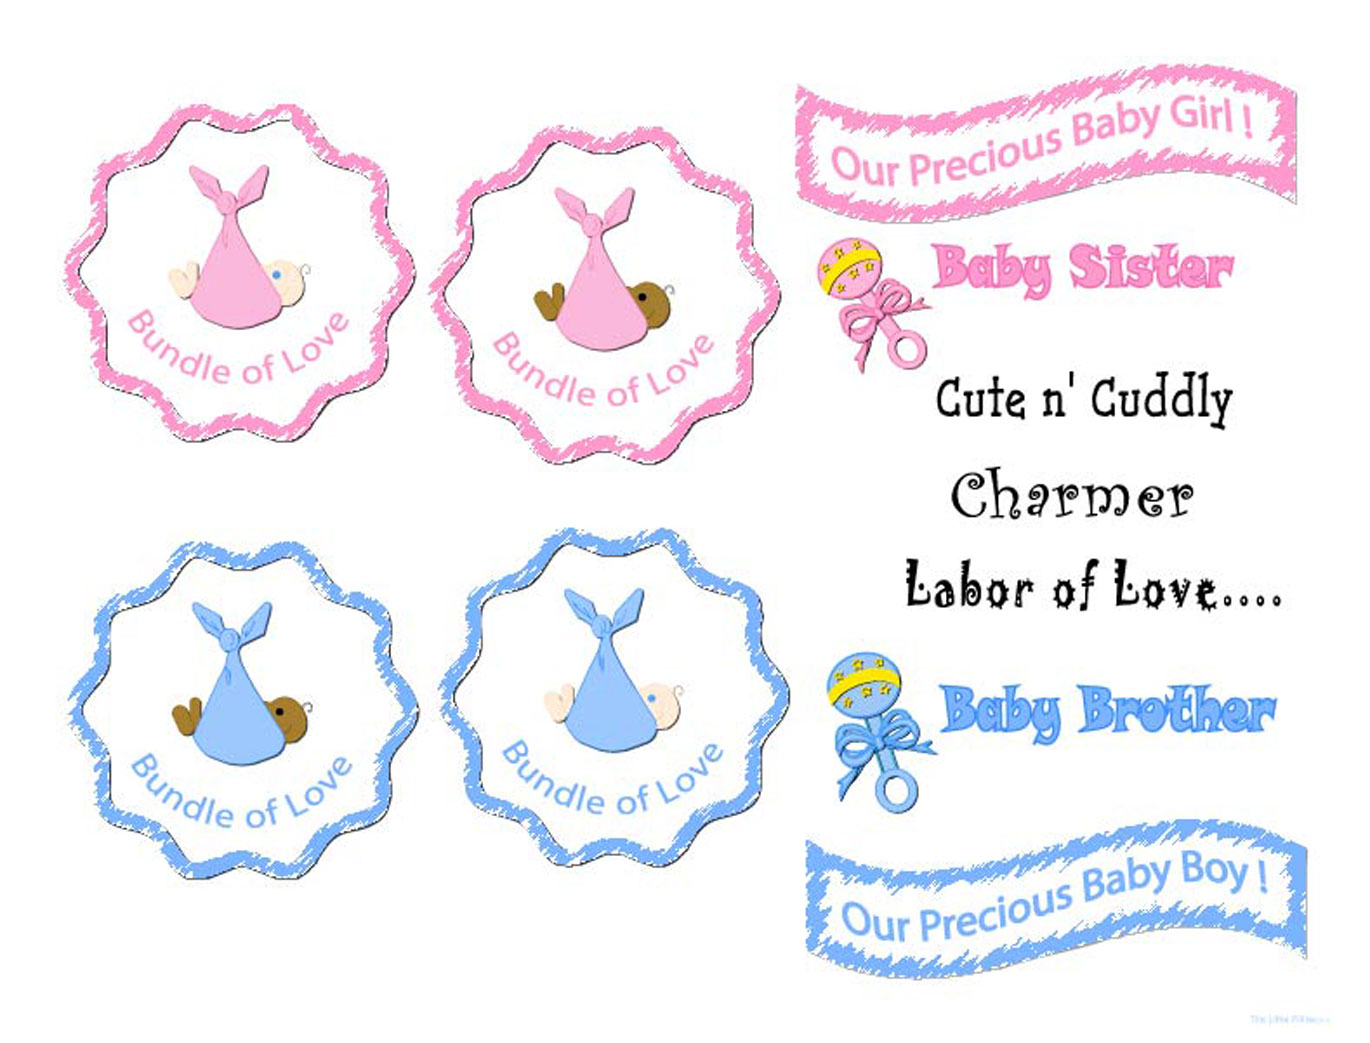 photograph relating to Baby Girl Clip Art Free Printable identified as No cost printable, electronic, sbook template internet pages, contemporary born